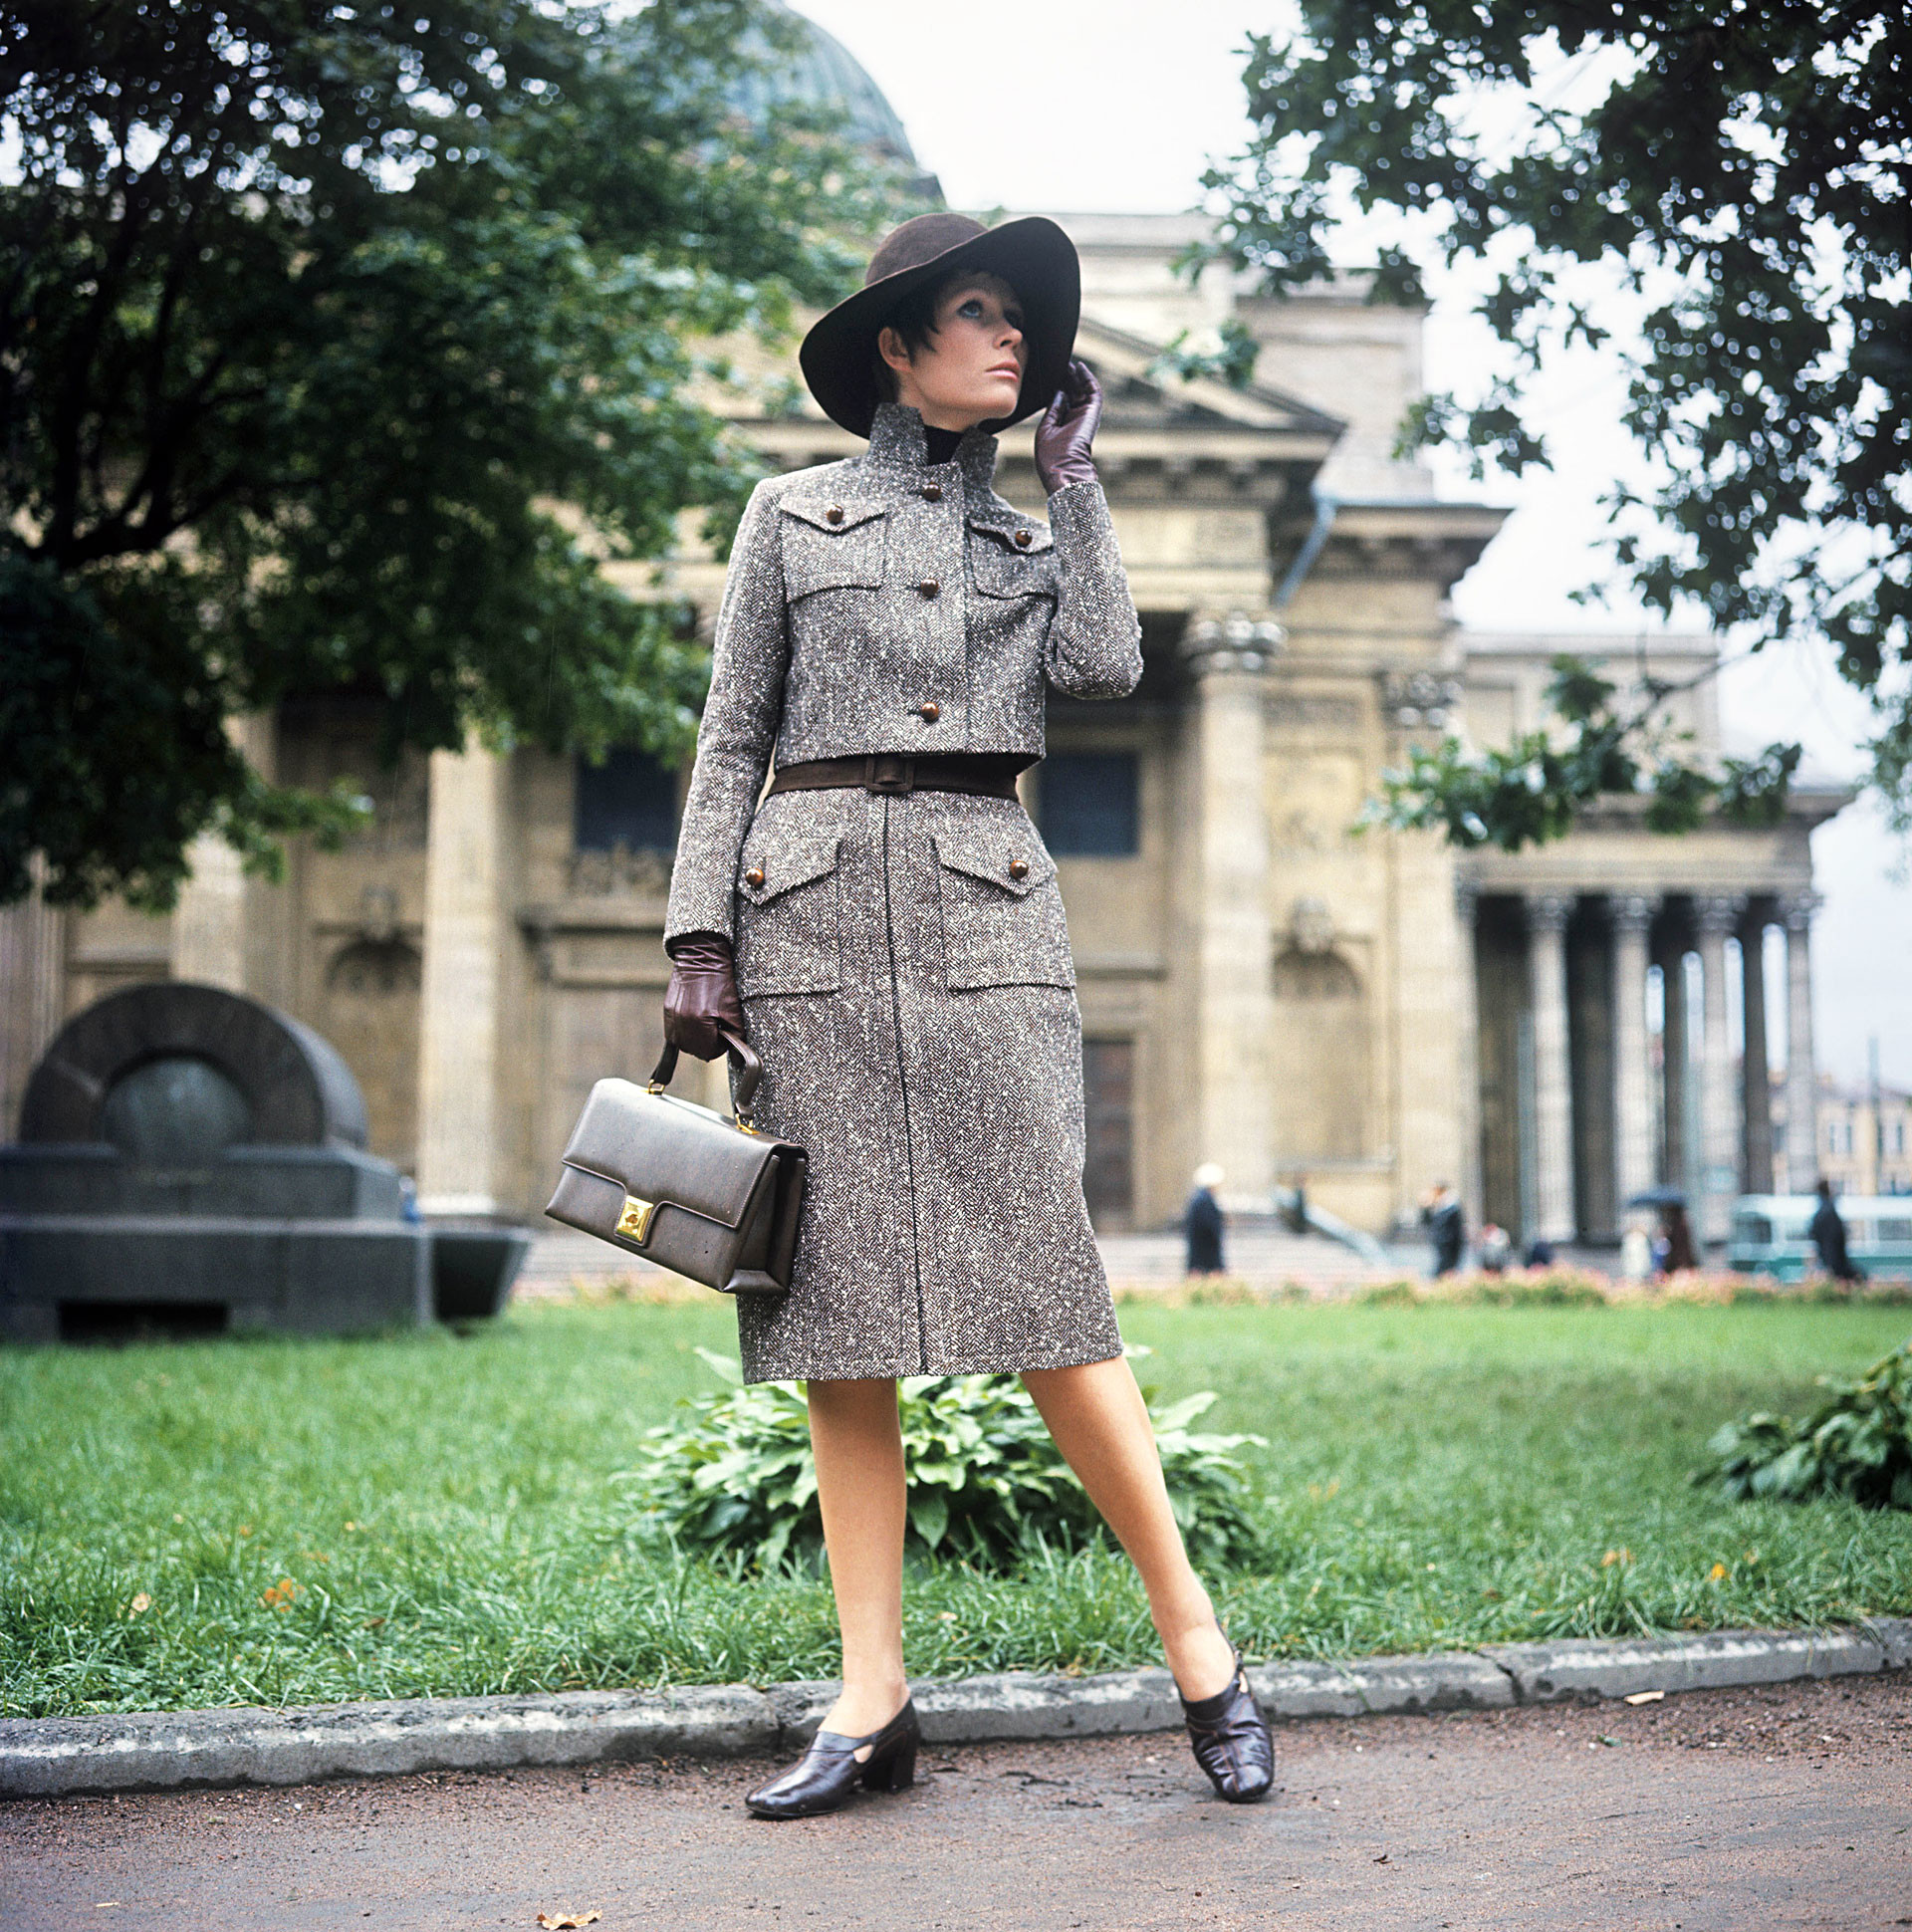 Tweed suit with extended skirt and short waist jacket, 1970